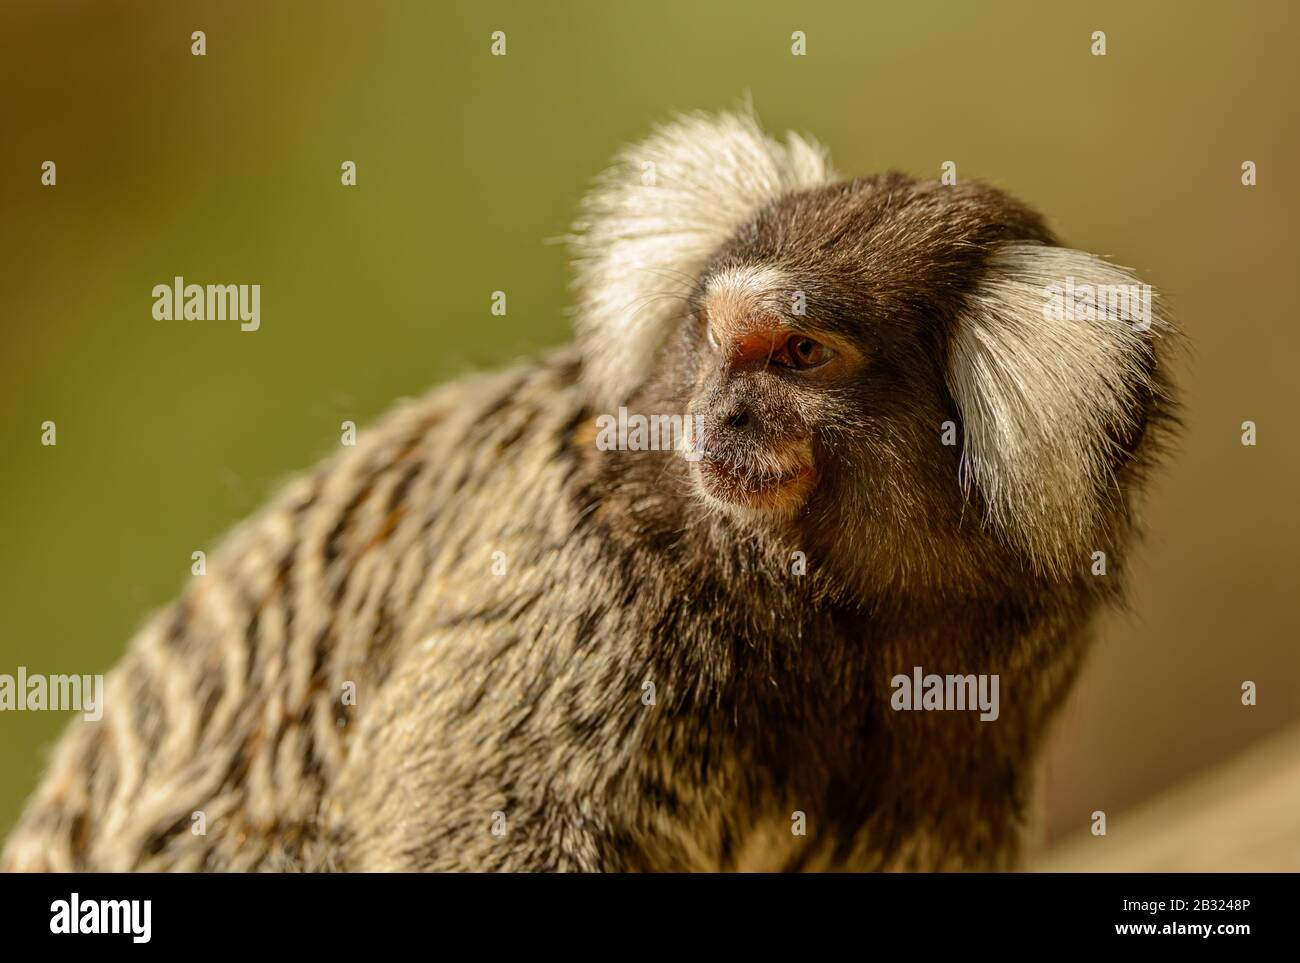 Marmoset Monkey Young High Resolution Stock Photography and Images - Alamy